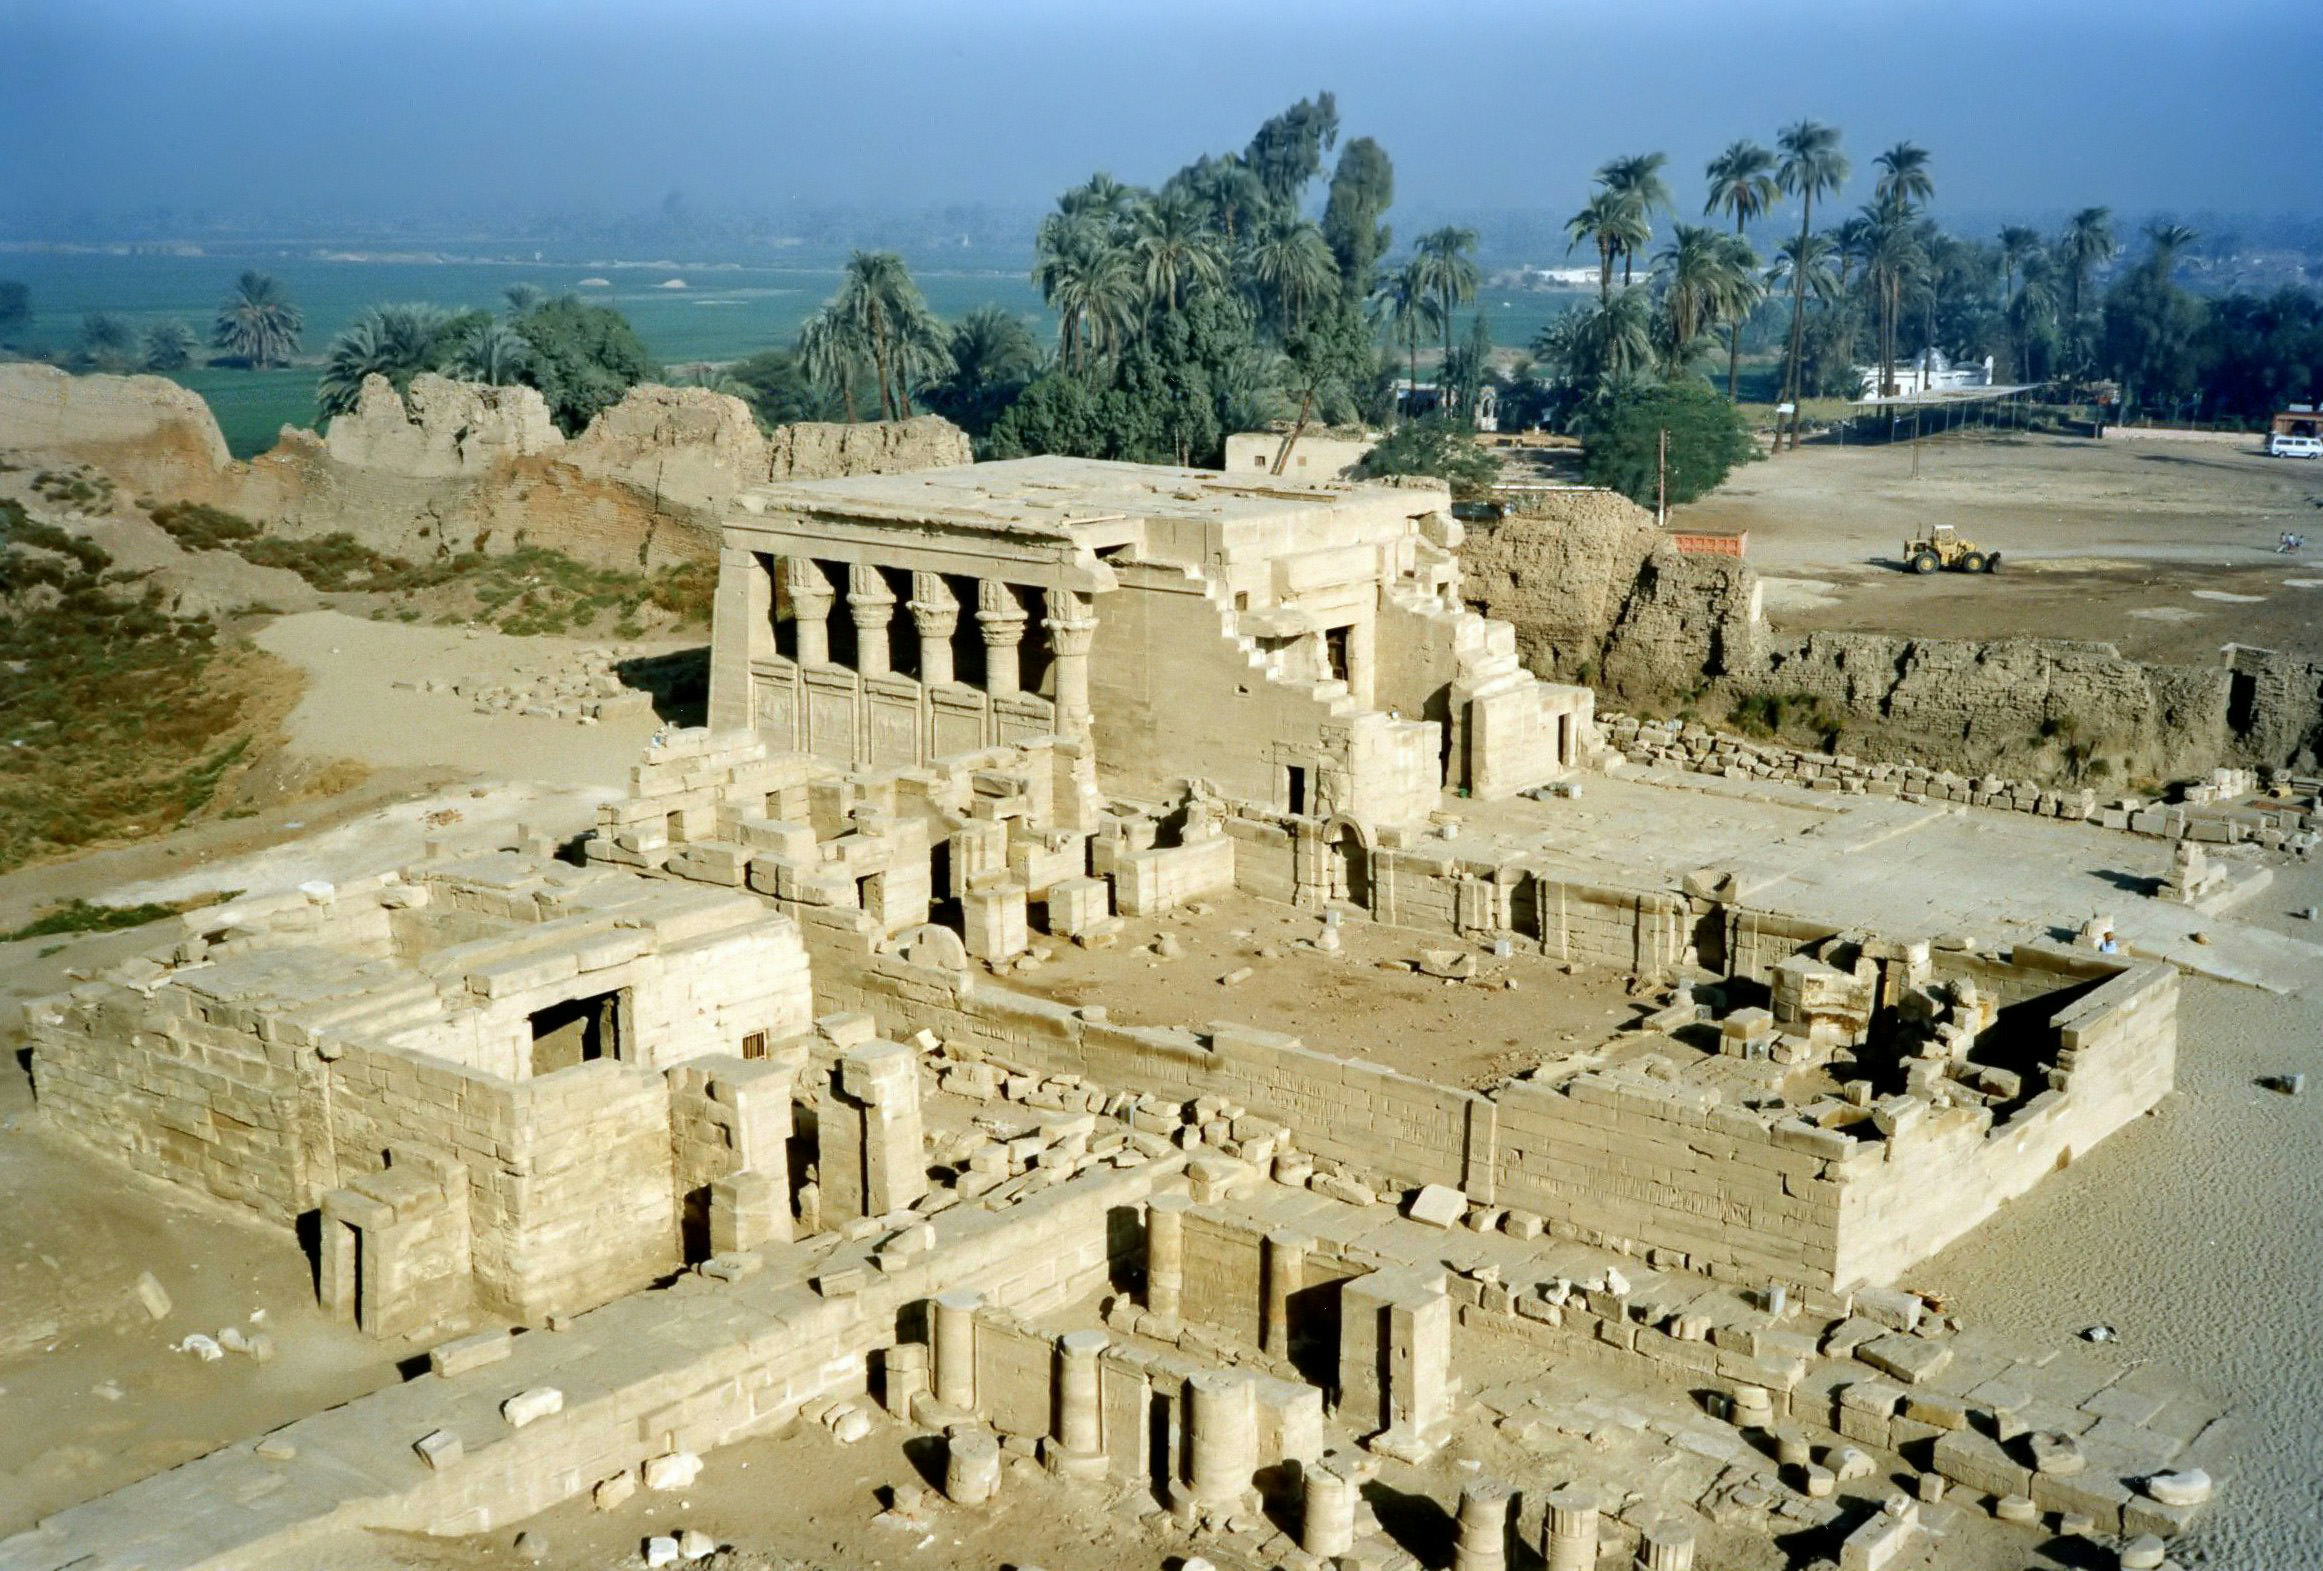 http://upload.wikimedia.org/wikipedia/commons/5/52/Dendera_Temple.jpg